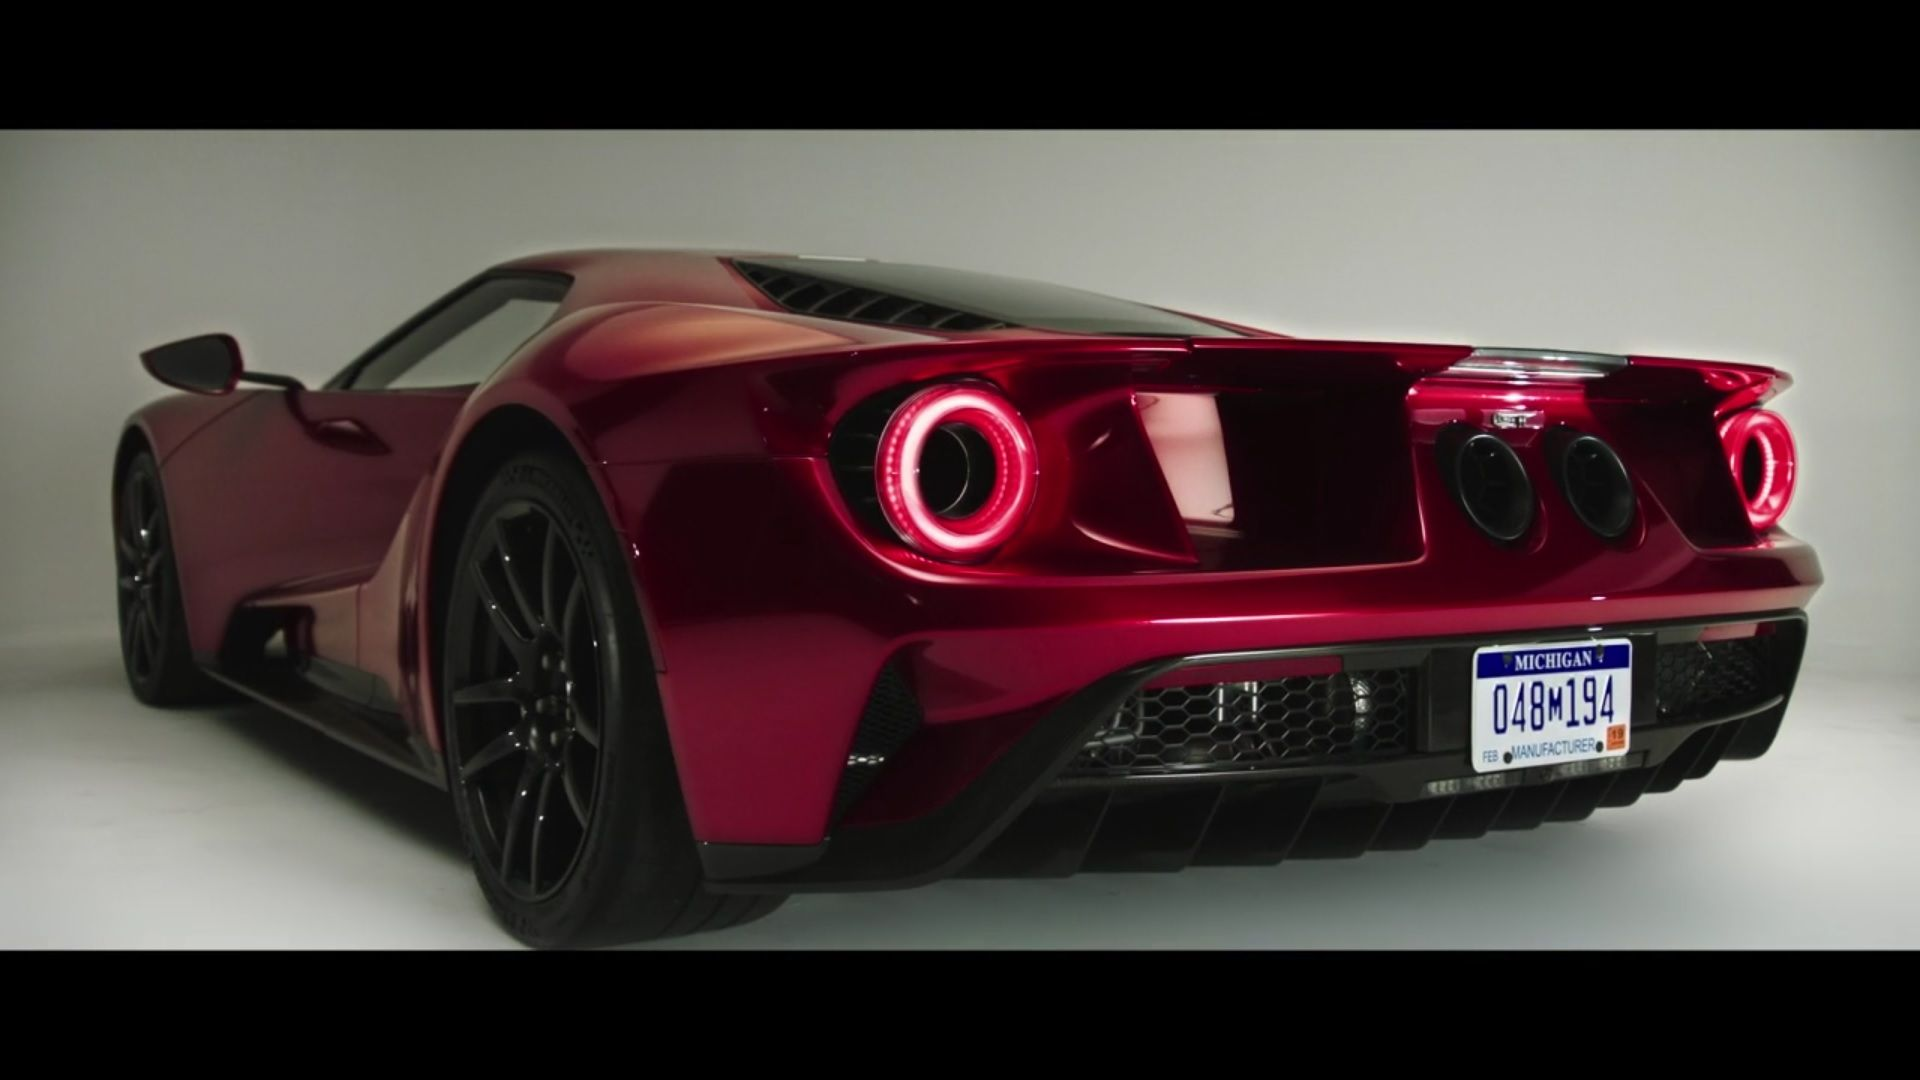 The Grand Tour Ford Gt Rear Angle